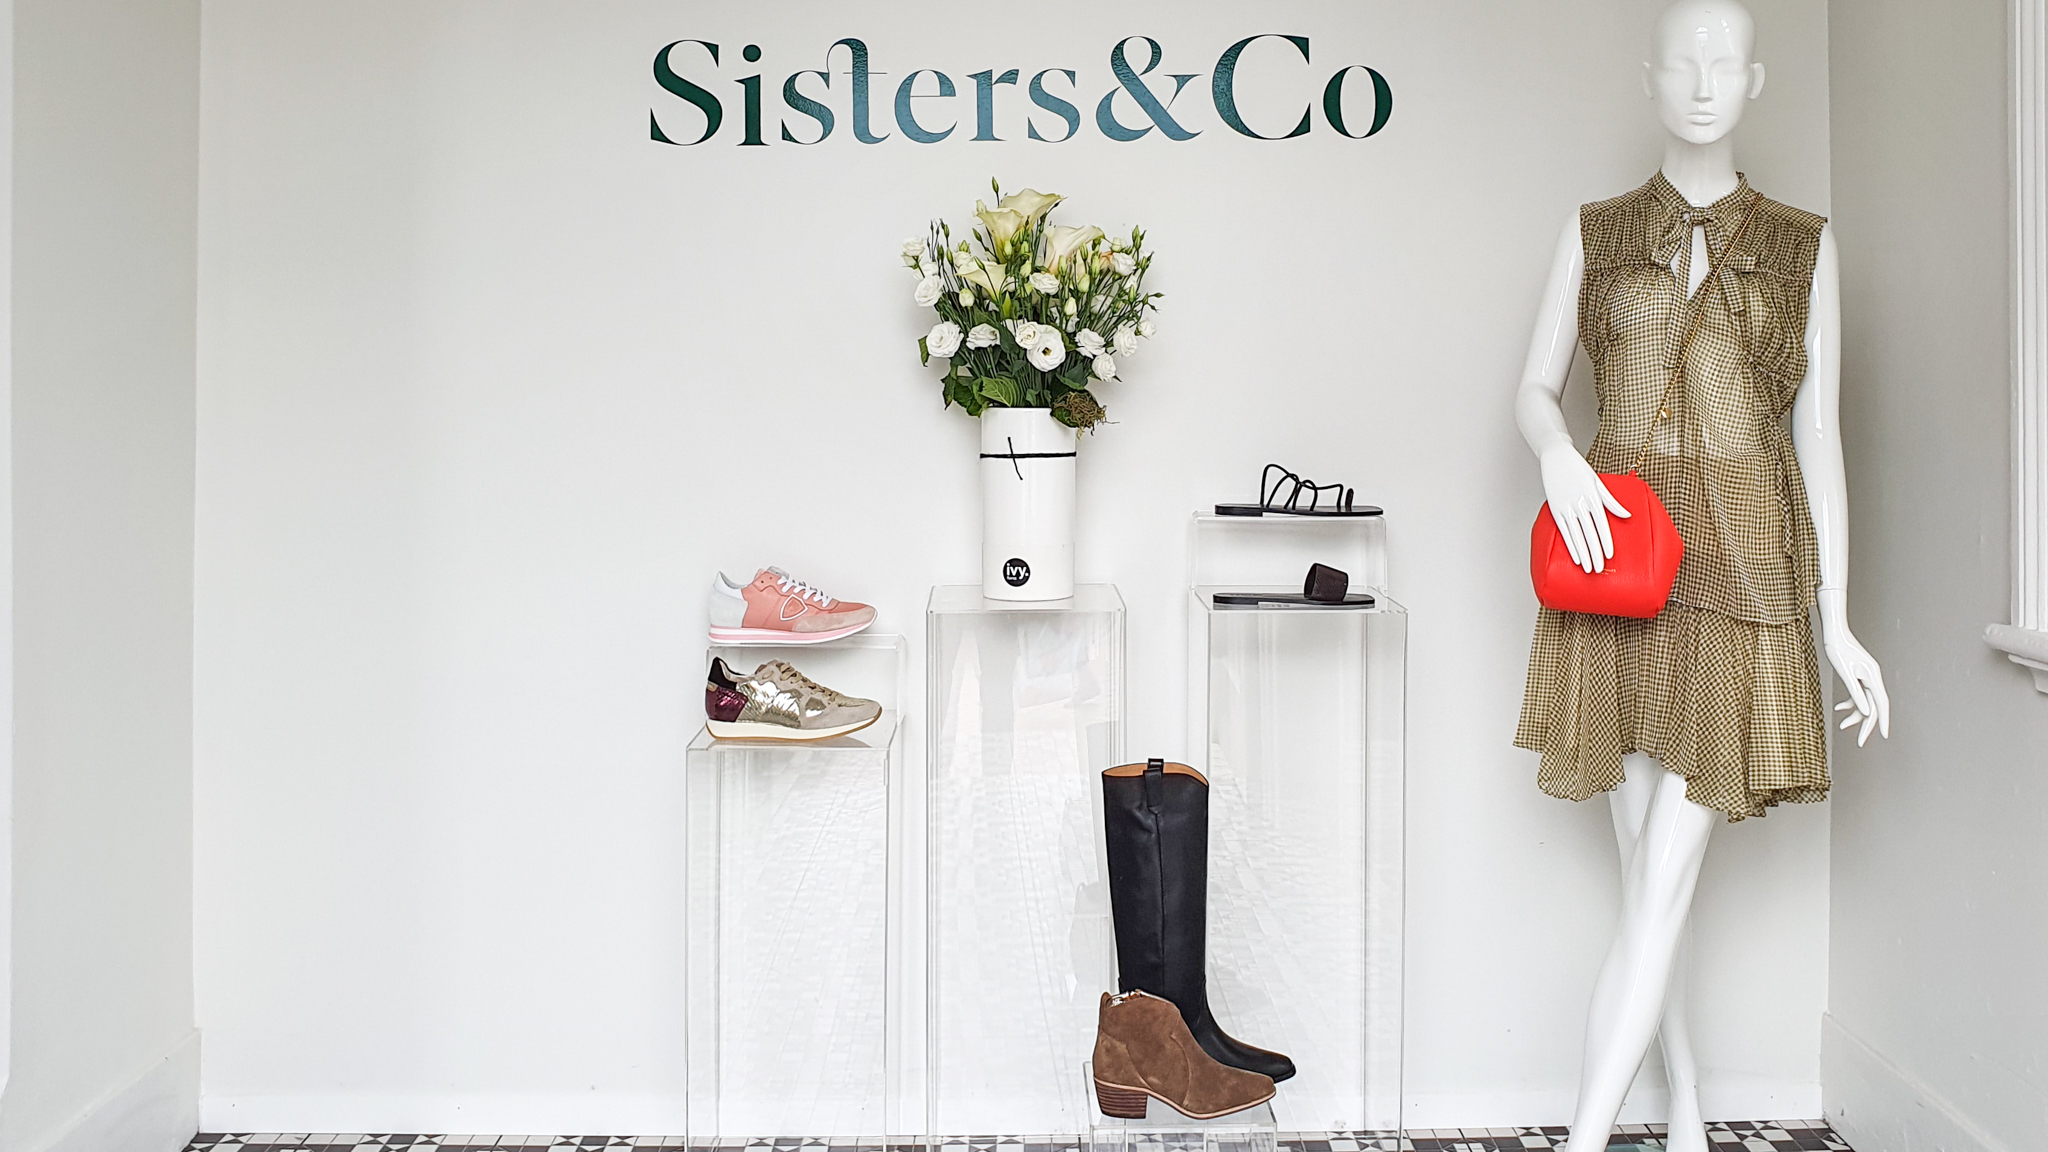 Sisters & Co Victoria Street Cambridge New Zealand